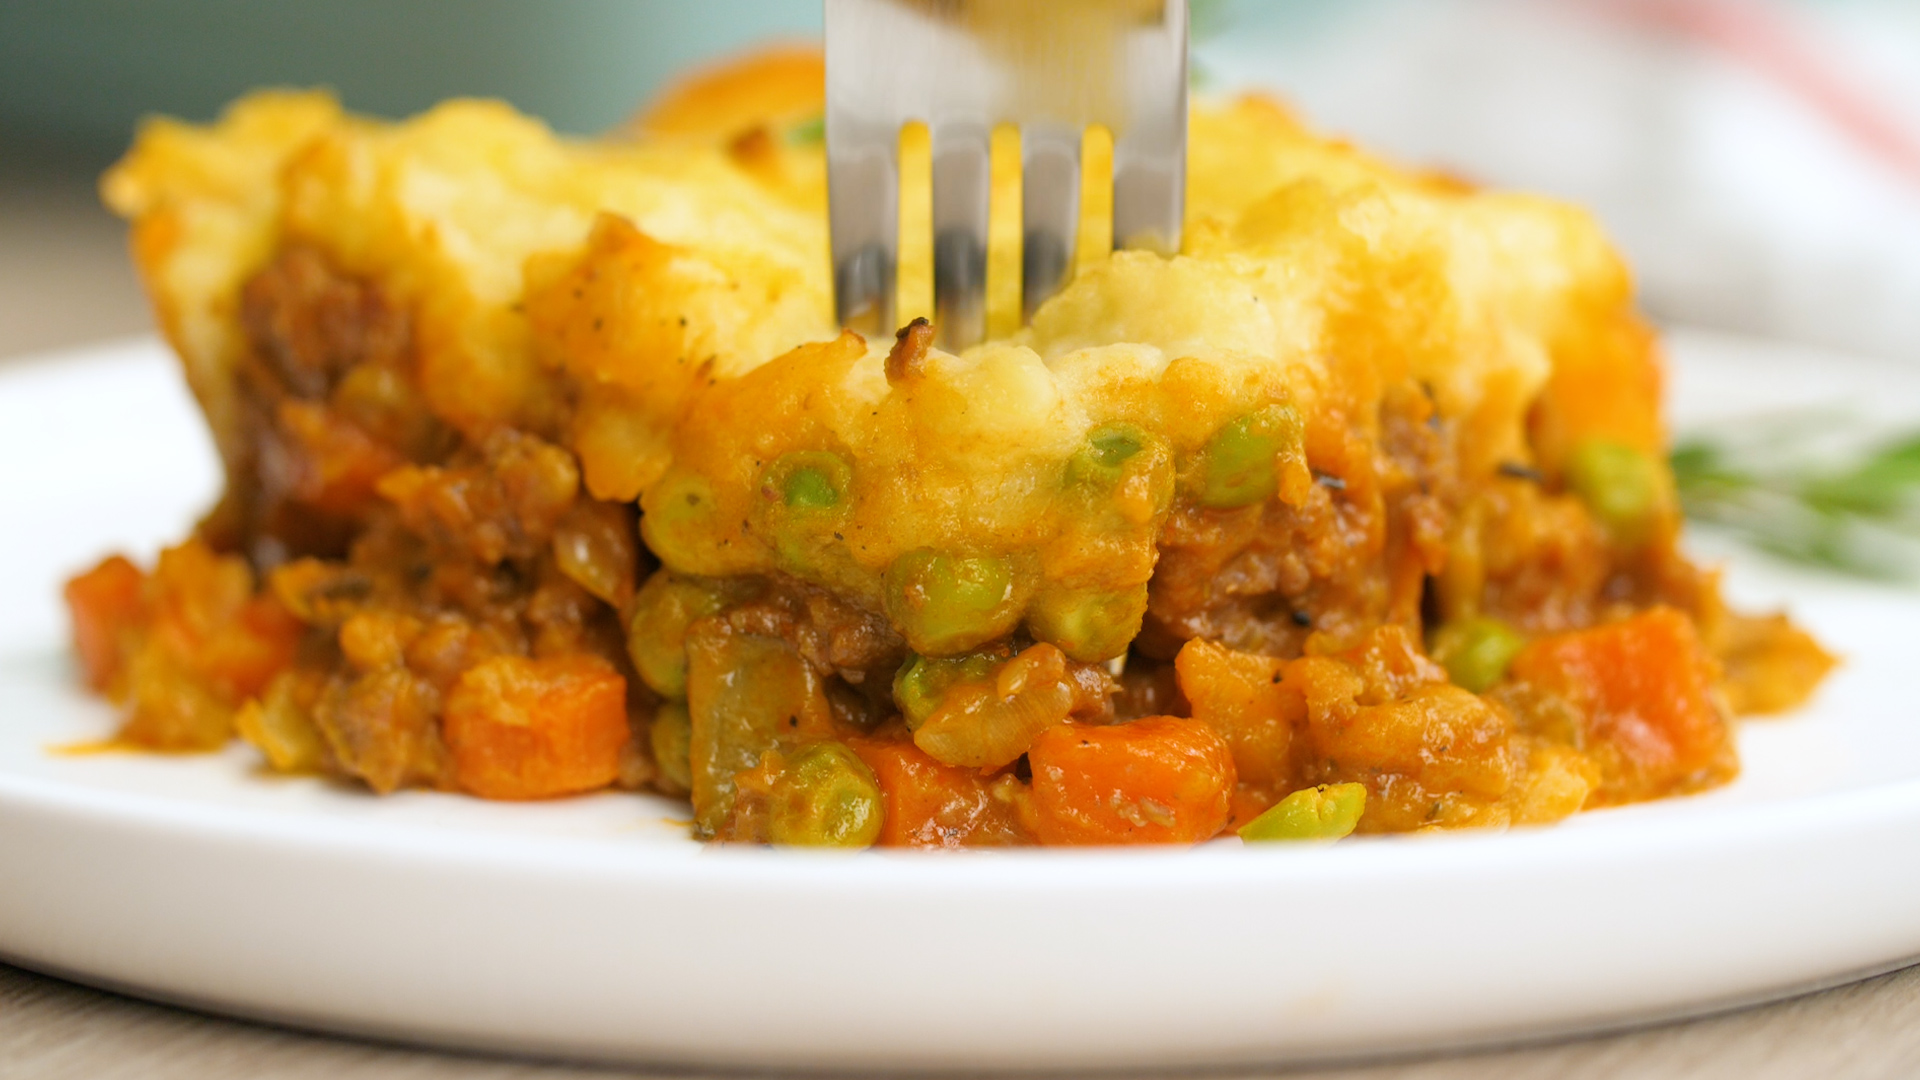 A front view of some shepherd's pie, with the ground lamb filling, and vegetables and potato layer, a fork sticking in the top